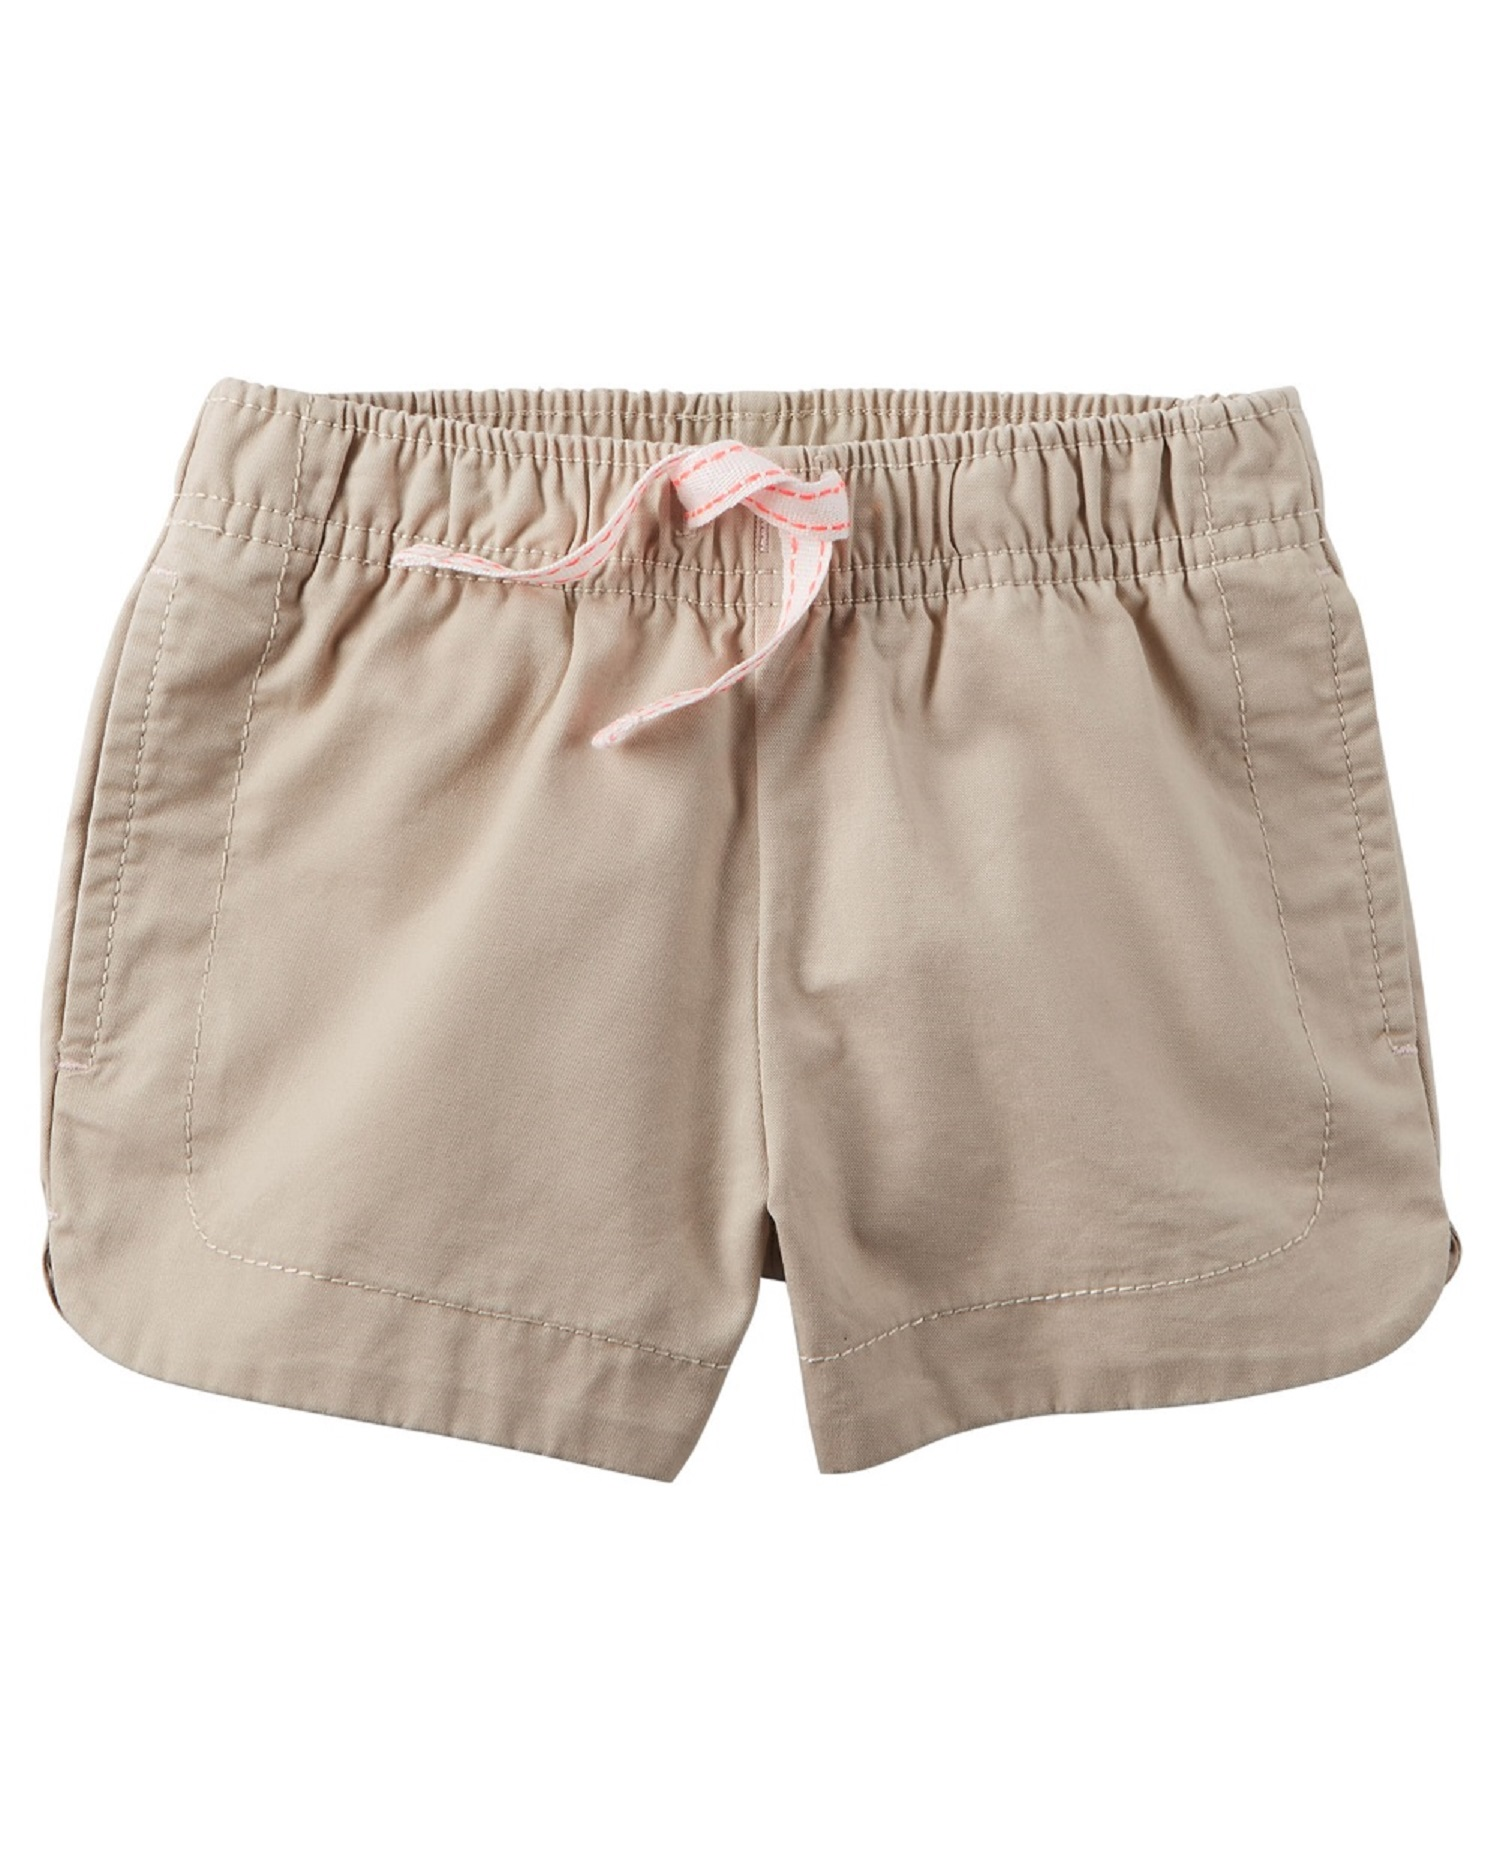 Carter's Baby Girls' Cinch-Up Twill Short, 24 Months